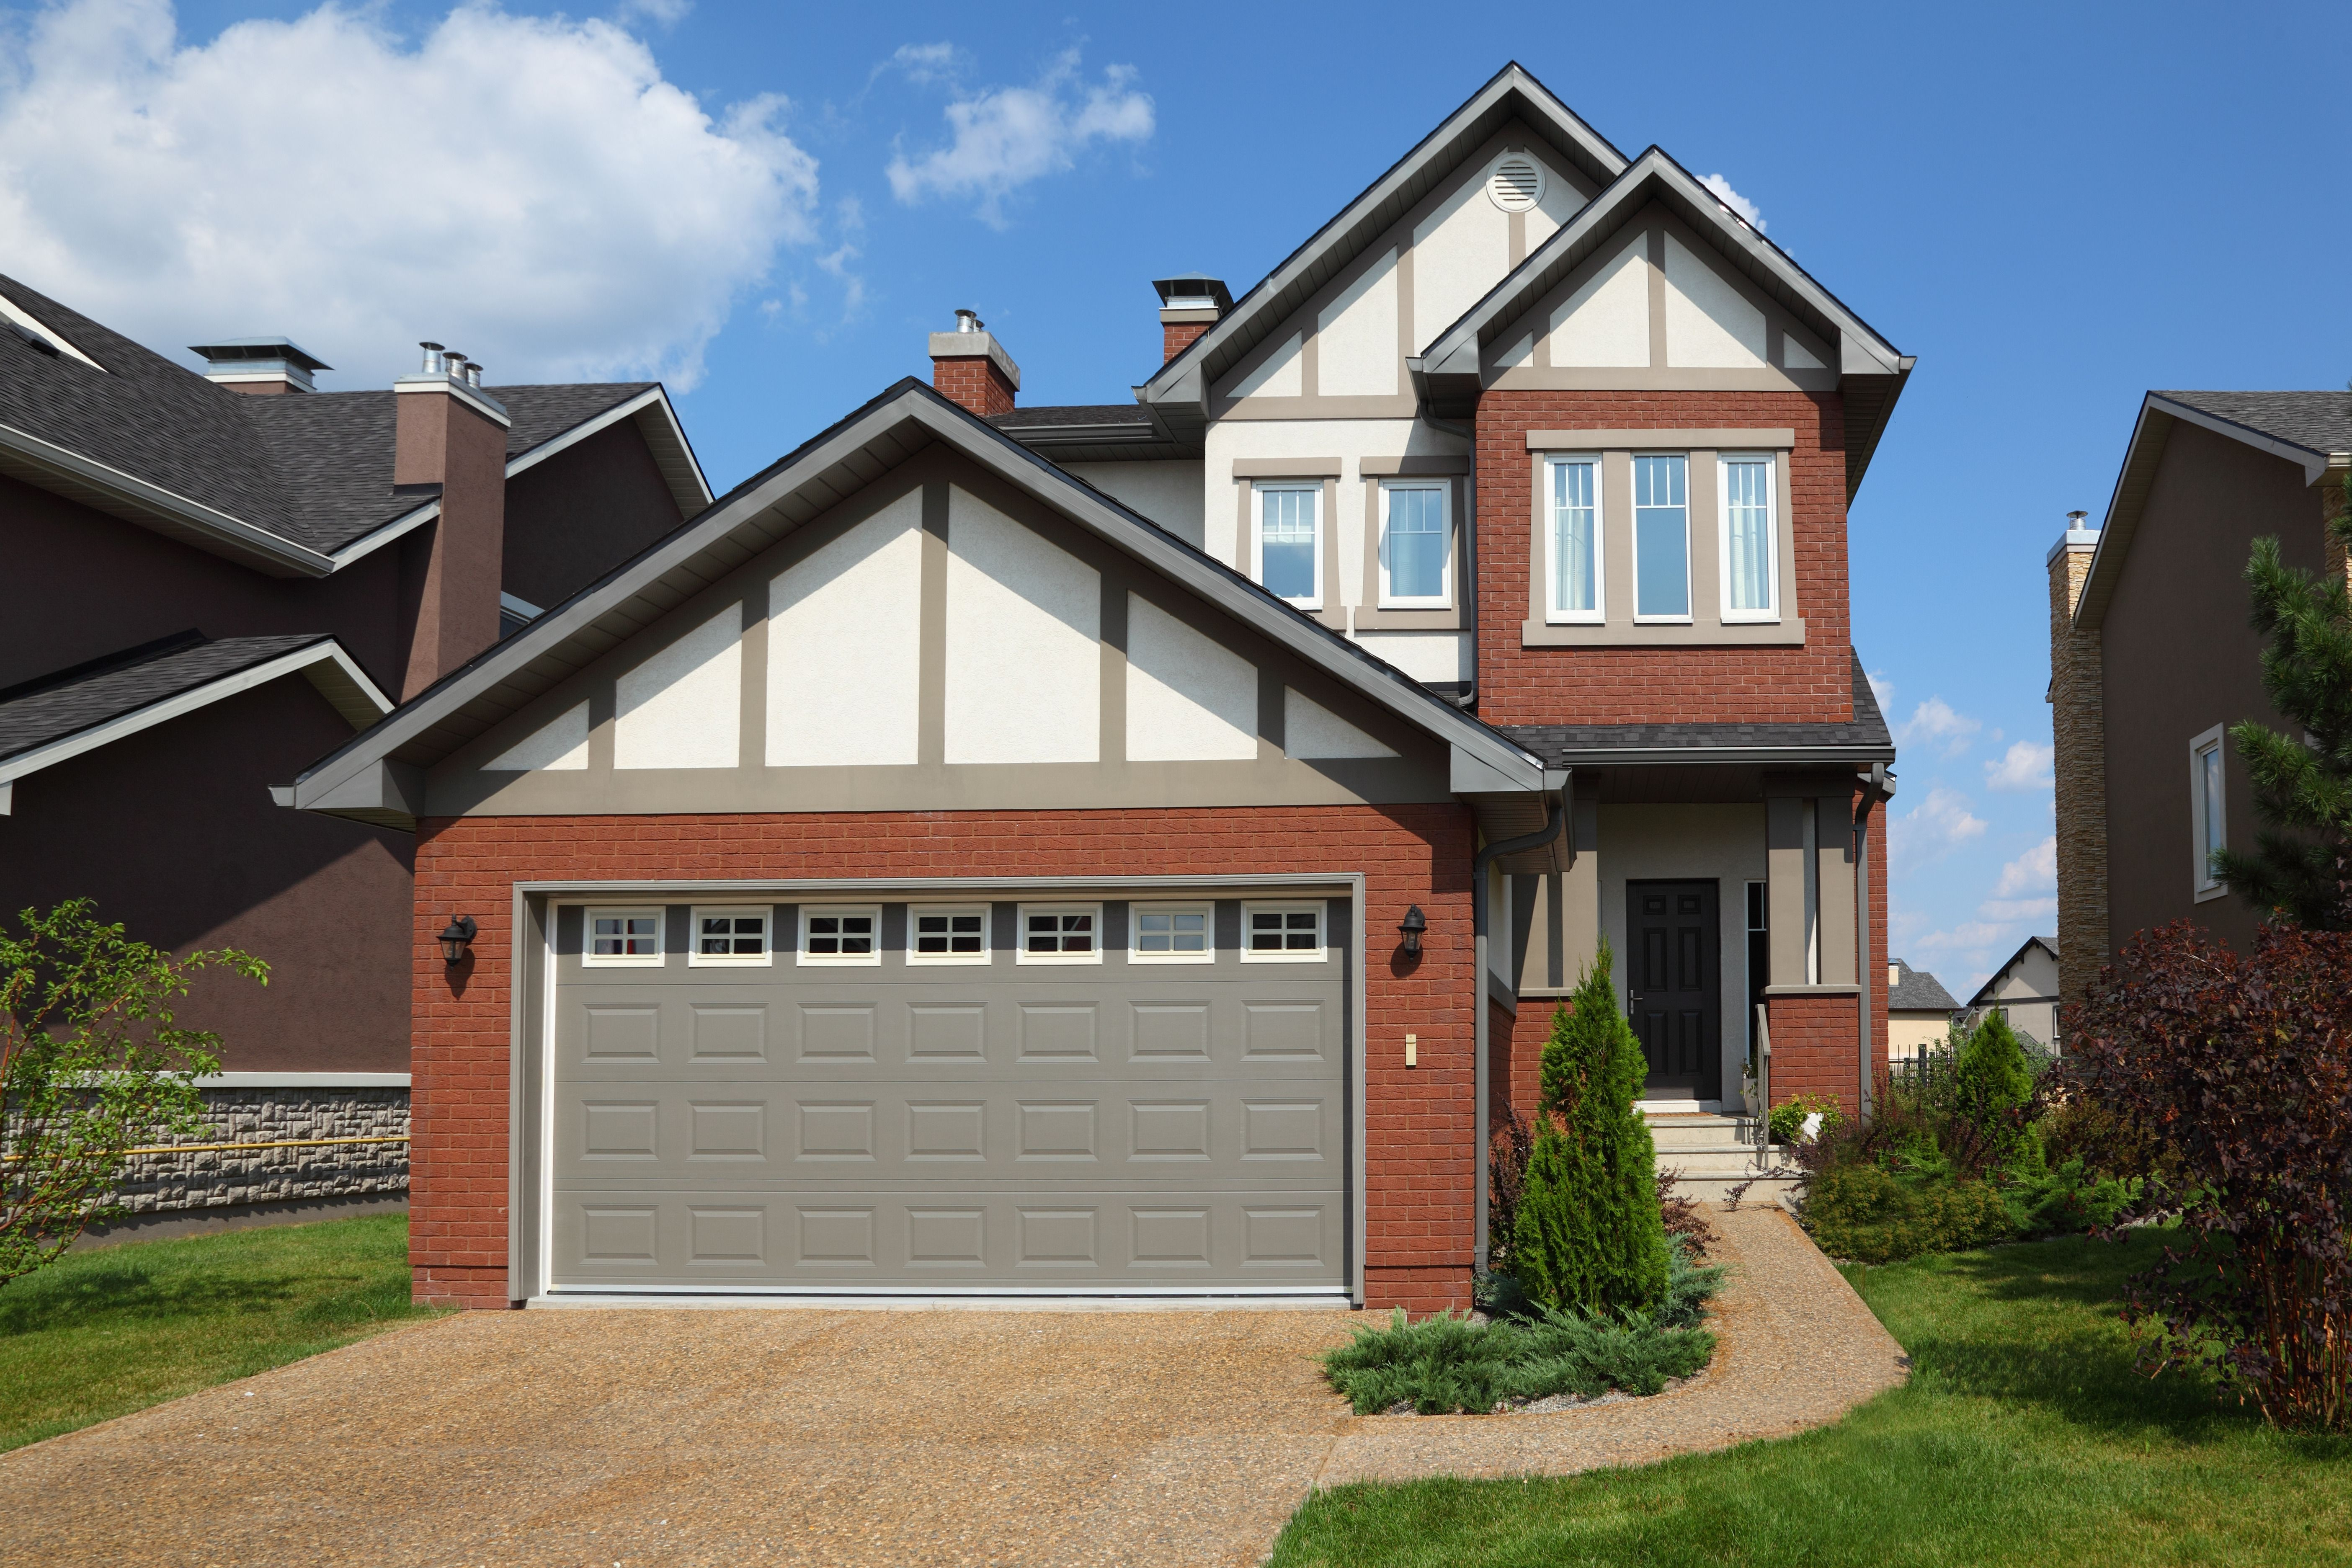 Add a garage to my house - Separate House And Separate Garage Don T Worry My Have Remote Control Garage Door